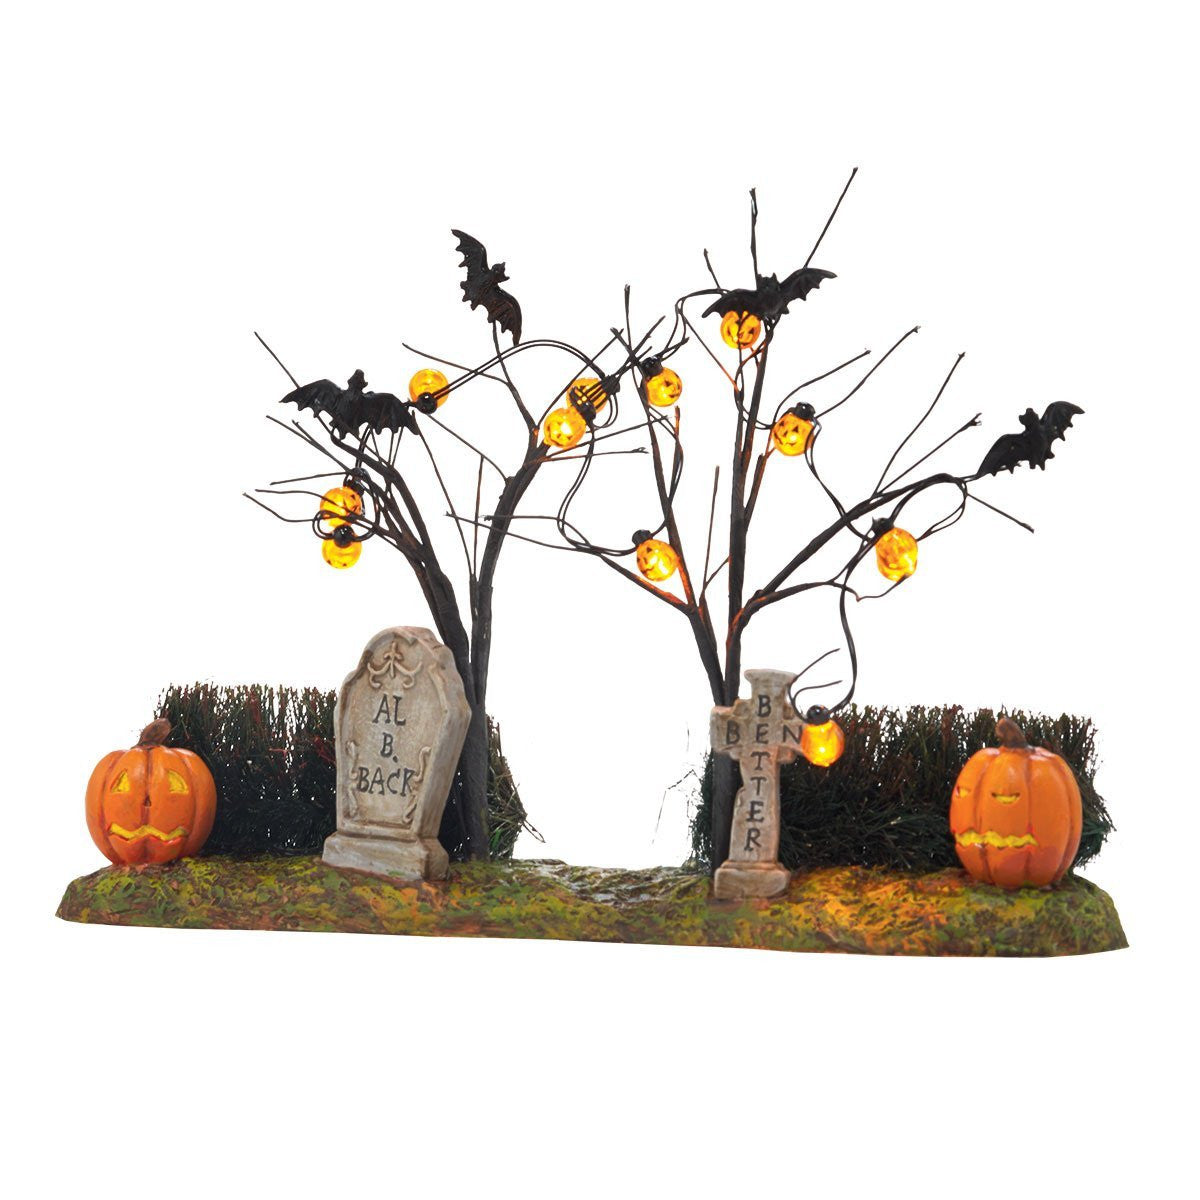 Haunted Light Up Cemetery with Jack-O-Lanterns - Halloween Accessories